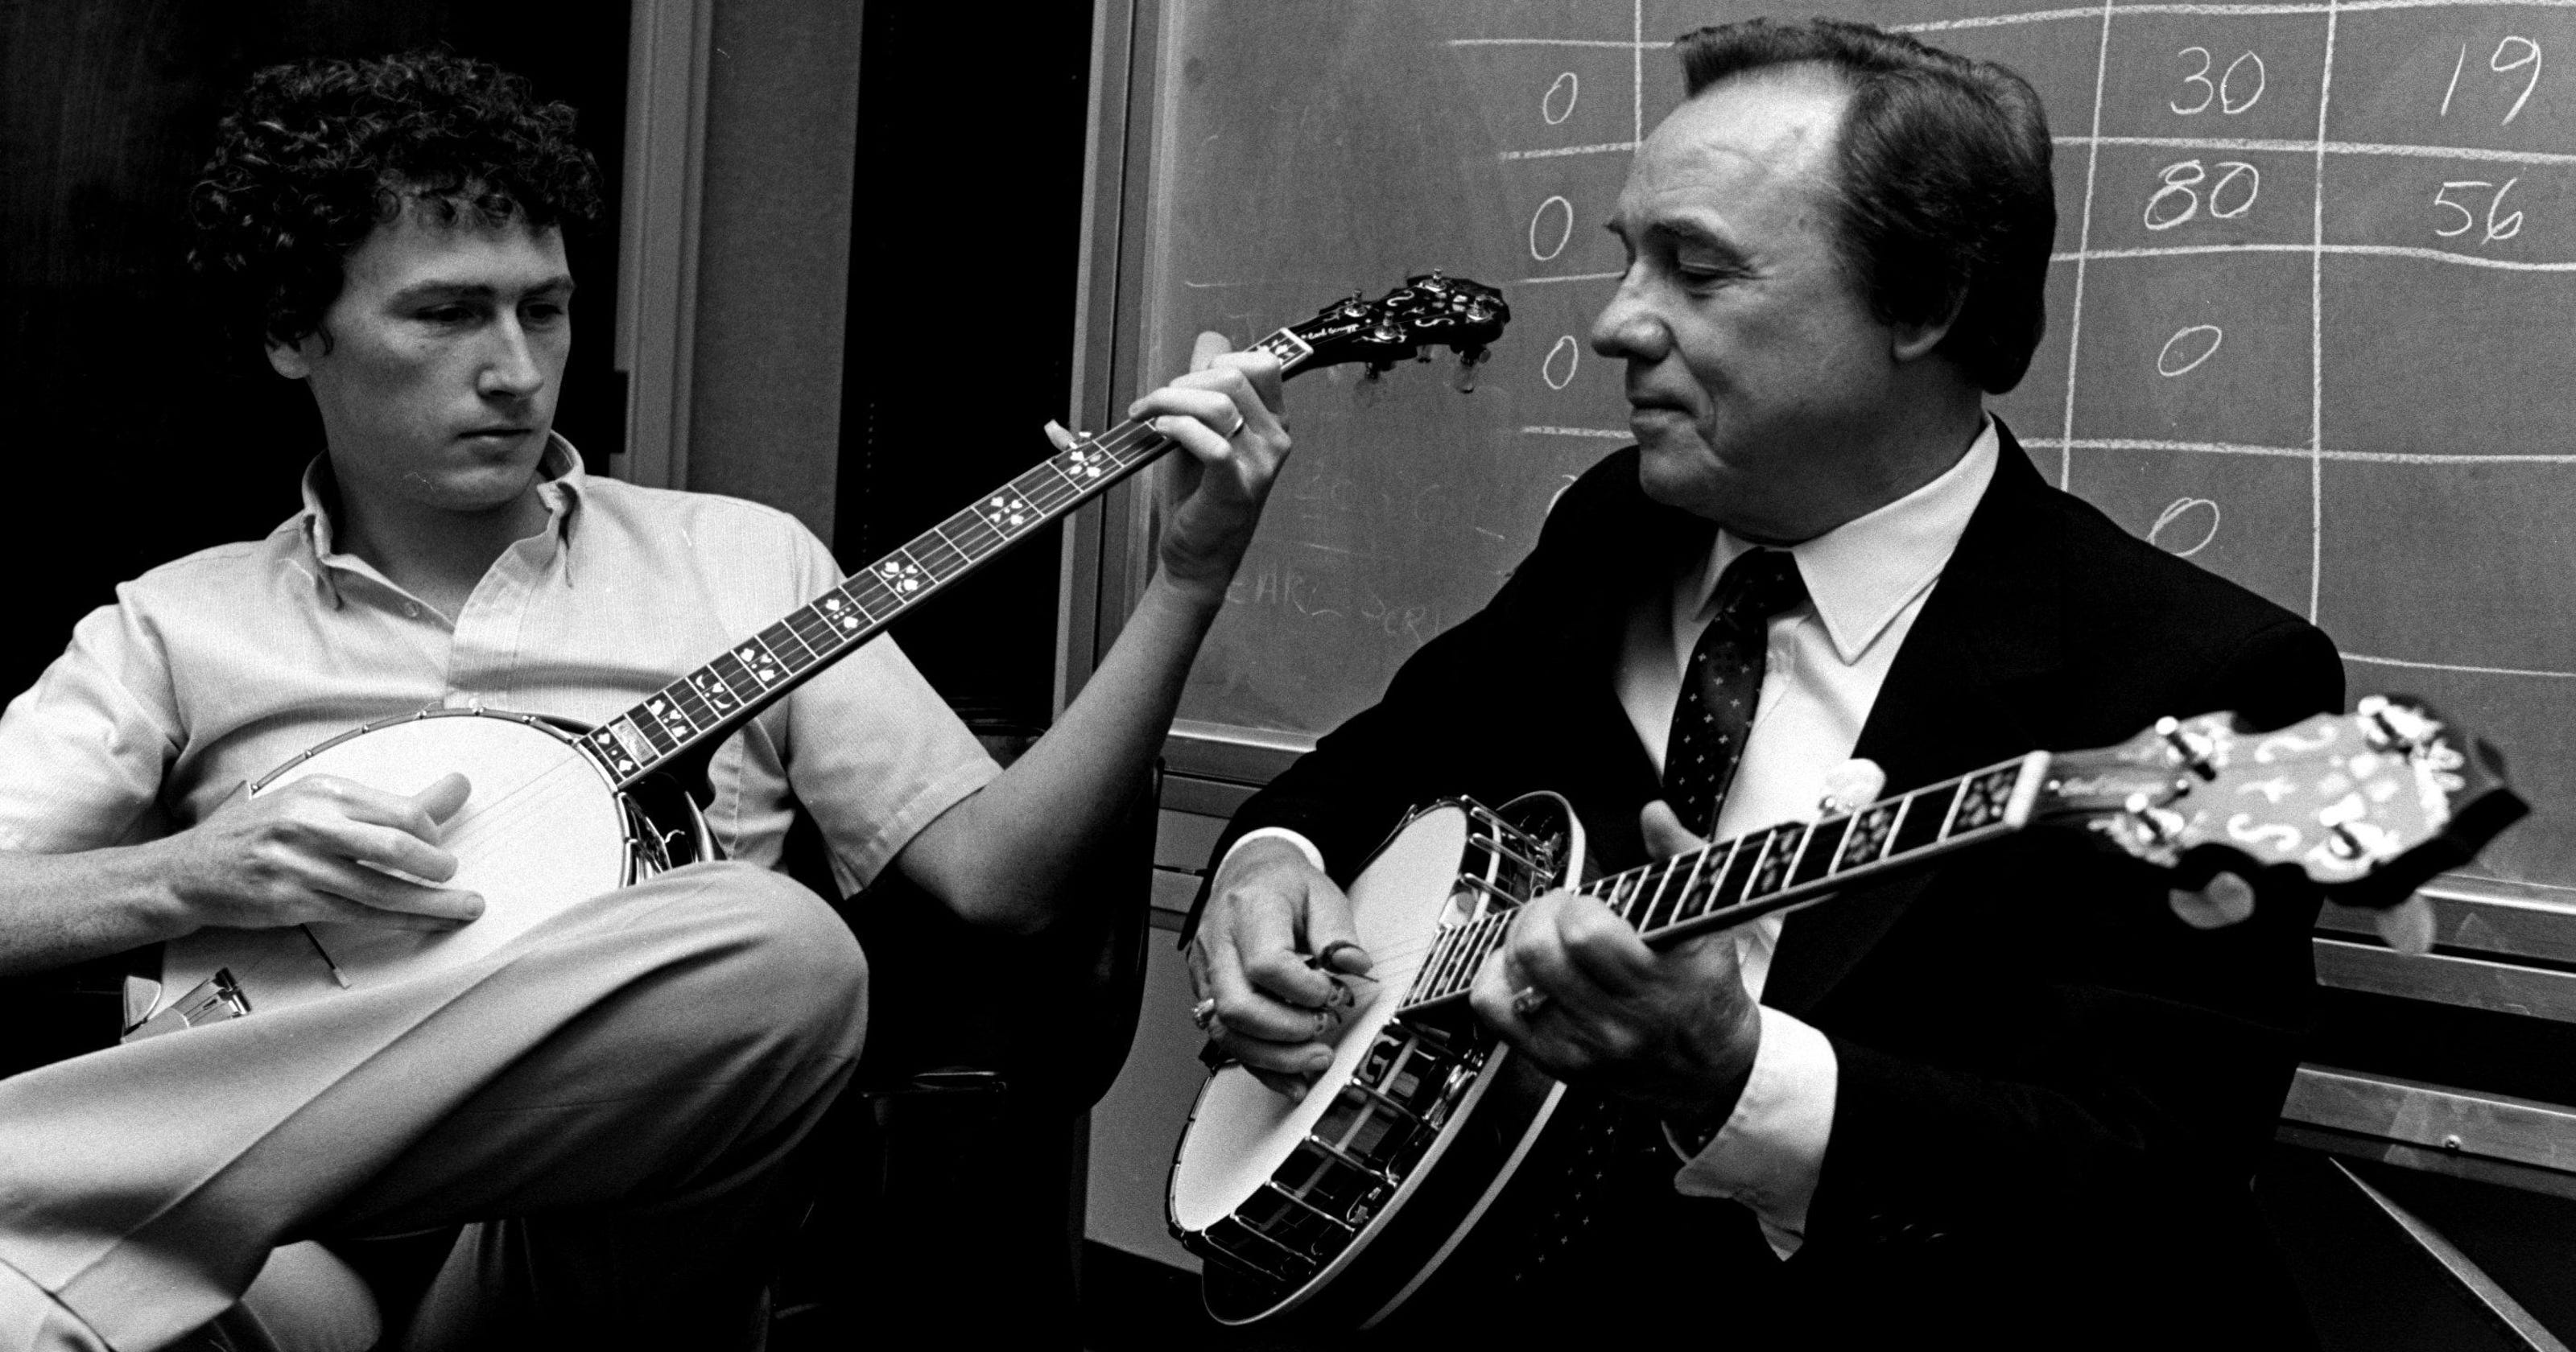 Randy Scruggs Earl Scruggs Son Acclaimed Guitarist And Producer Dead At 64